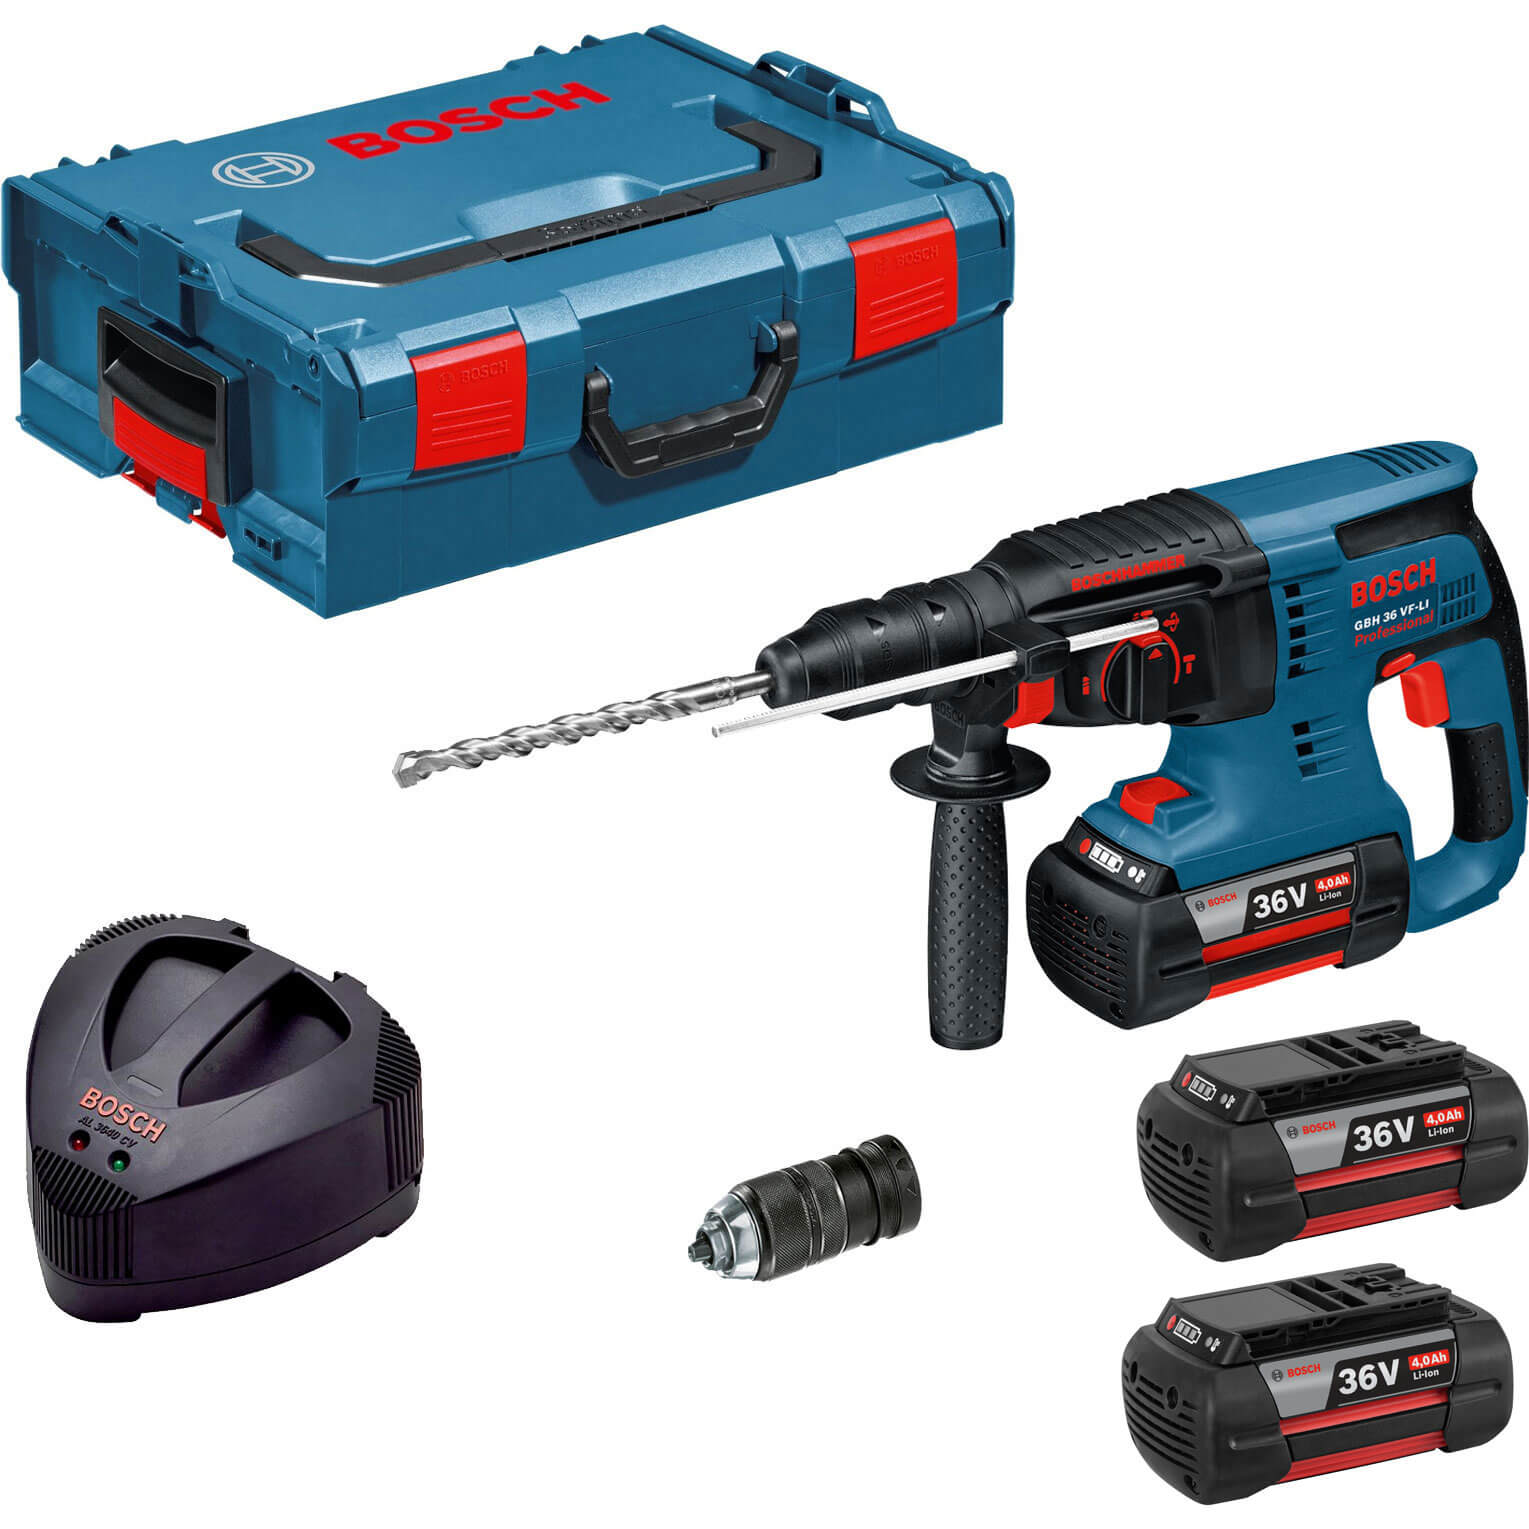 bosch gbh 2 28 dfv sds plus hammer drill 850w 240v with quick change chuck l boxx. Black Bedroom Furniture Sets. Home Design Ideas